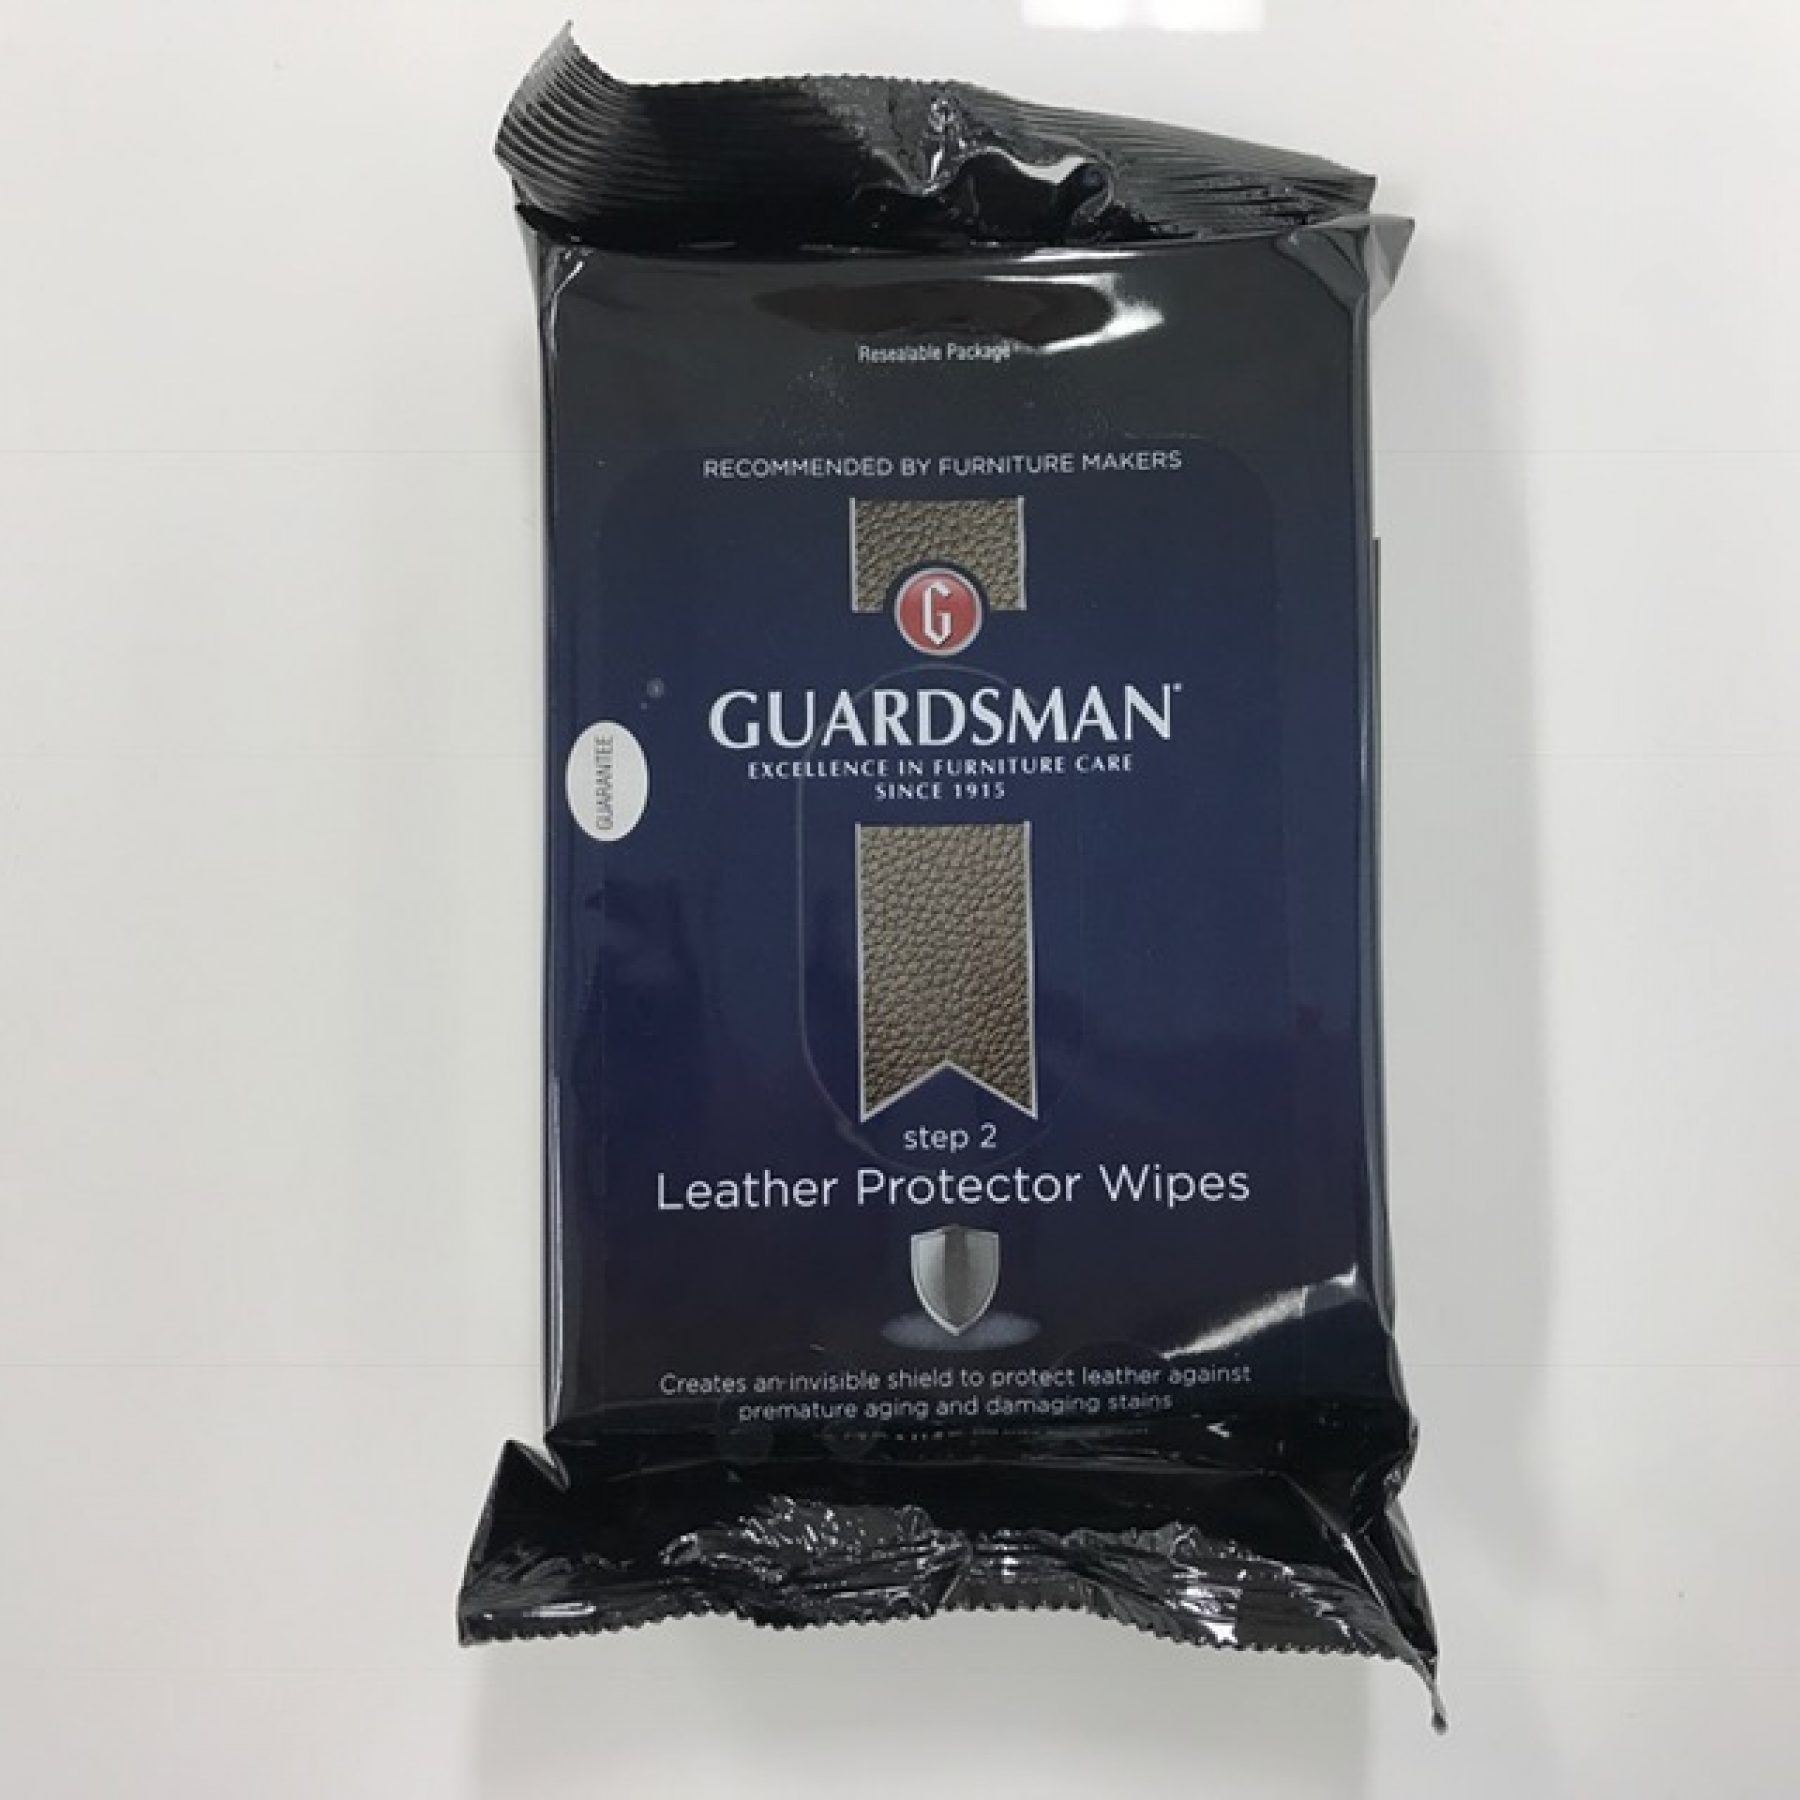 Leather Protector Wipes Beyond Furniture